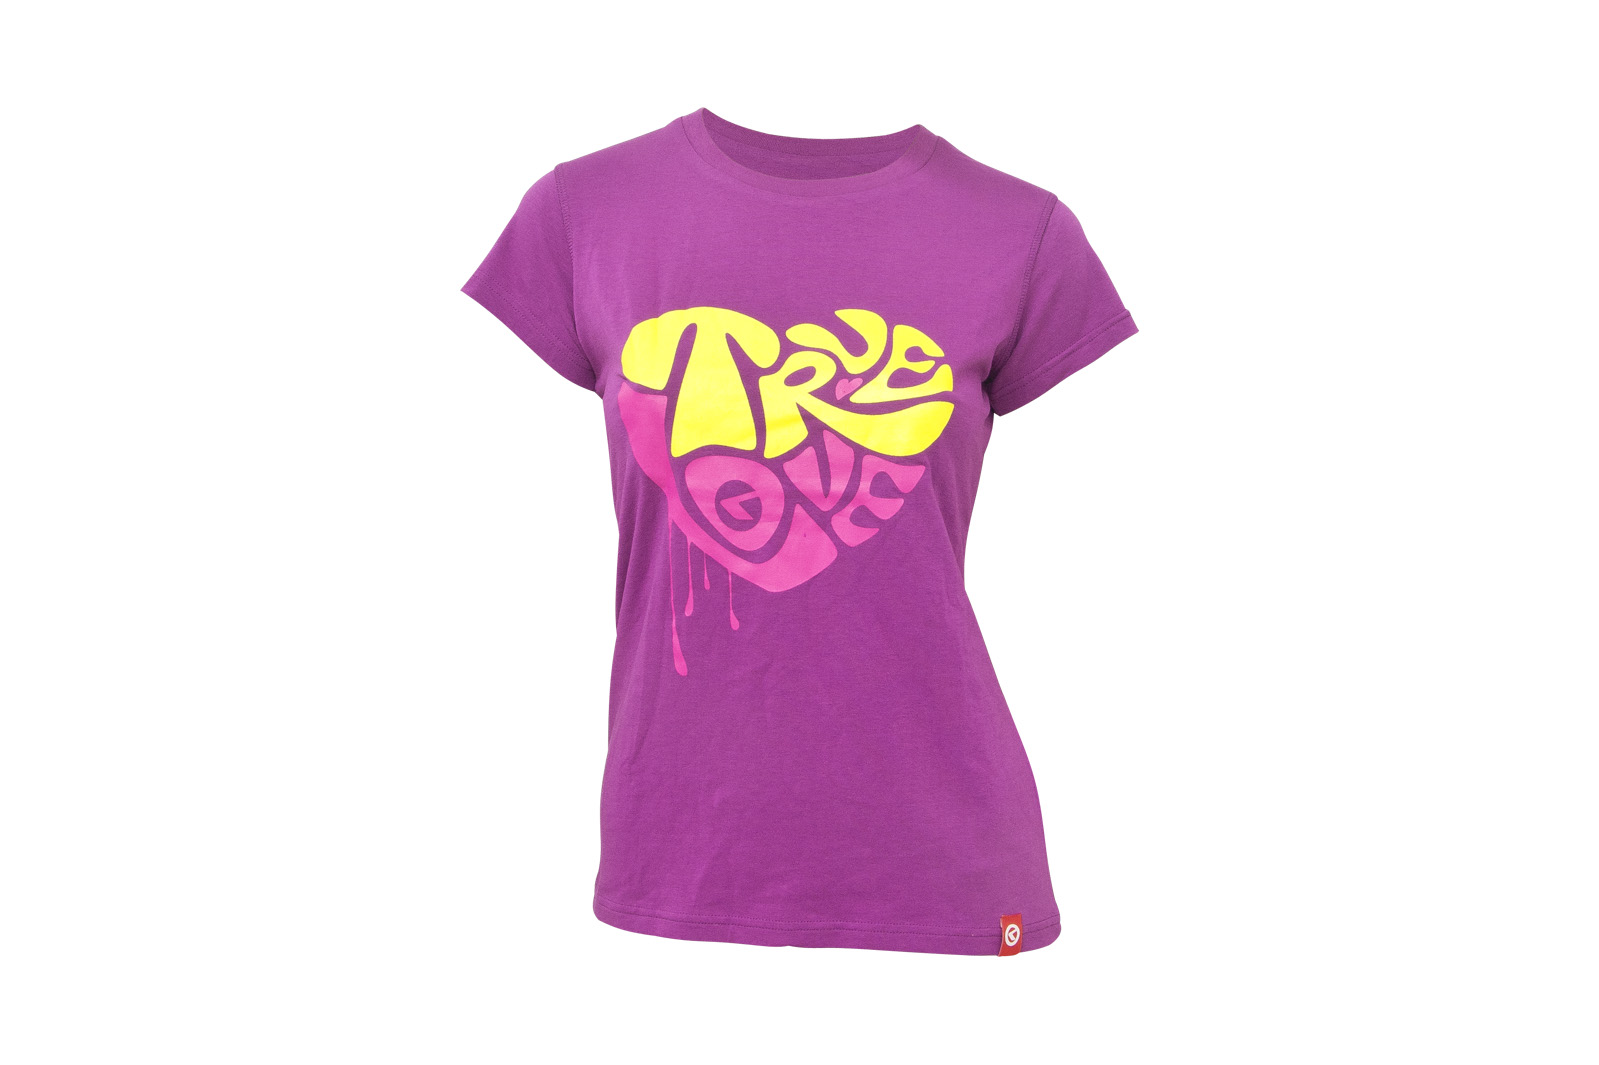 T-Shirt KELLYS WOMEN´S TRUE LOVE kurzarm Purple - XL - T-Shirt KELLYS WOMEN´S TRUE LOVE kurzarm Purple - XL